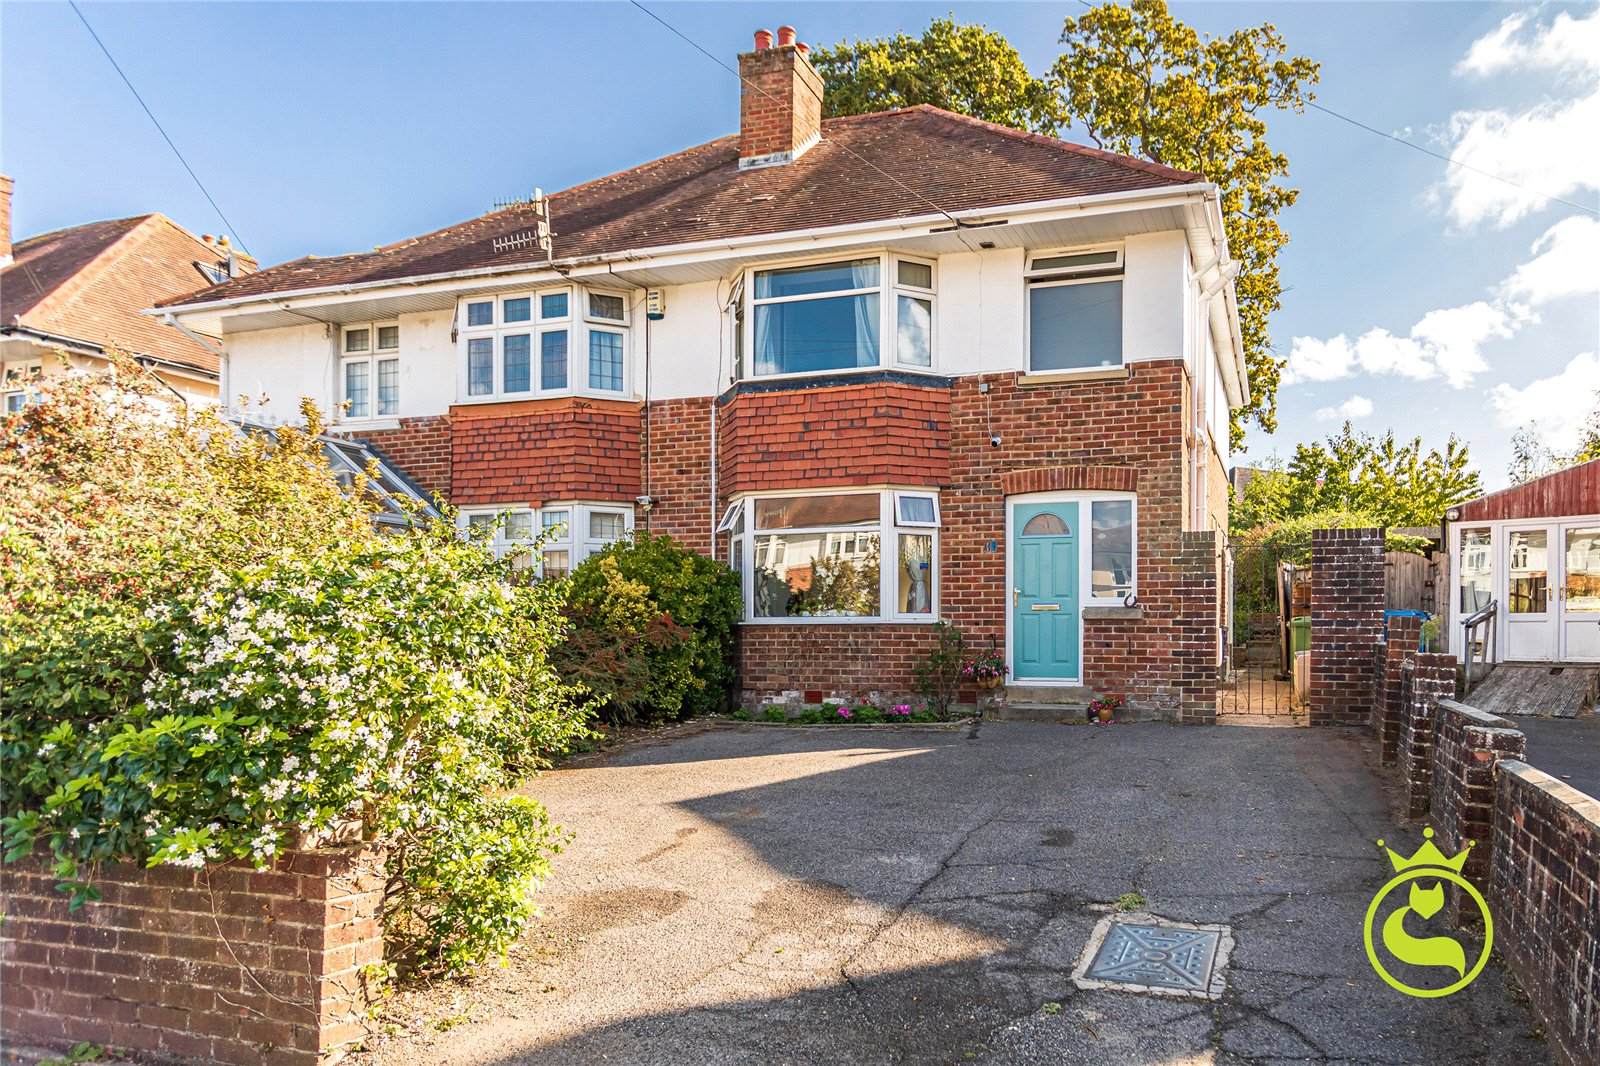 3 bed house for sale in Worthington Crescent, Whitecliff  - Property Image 1